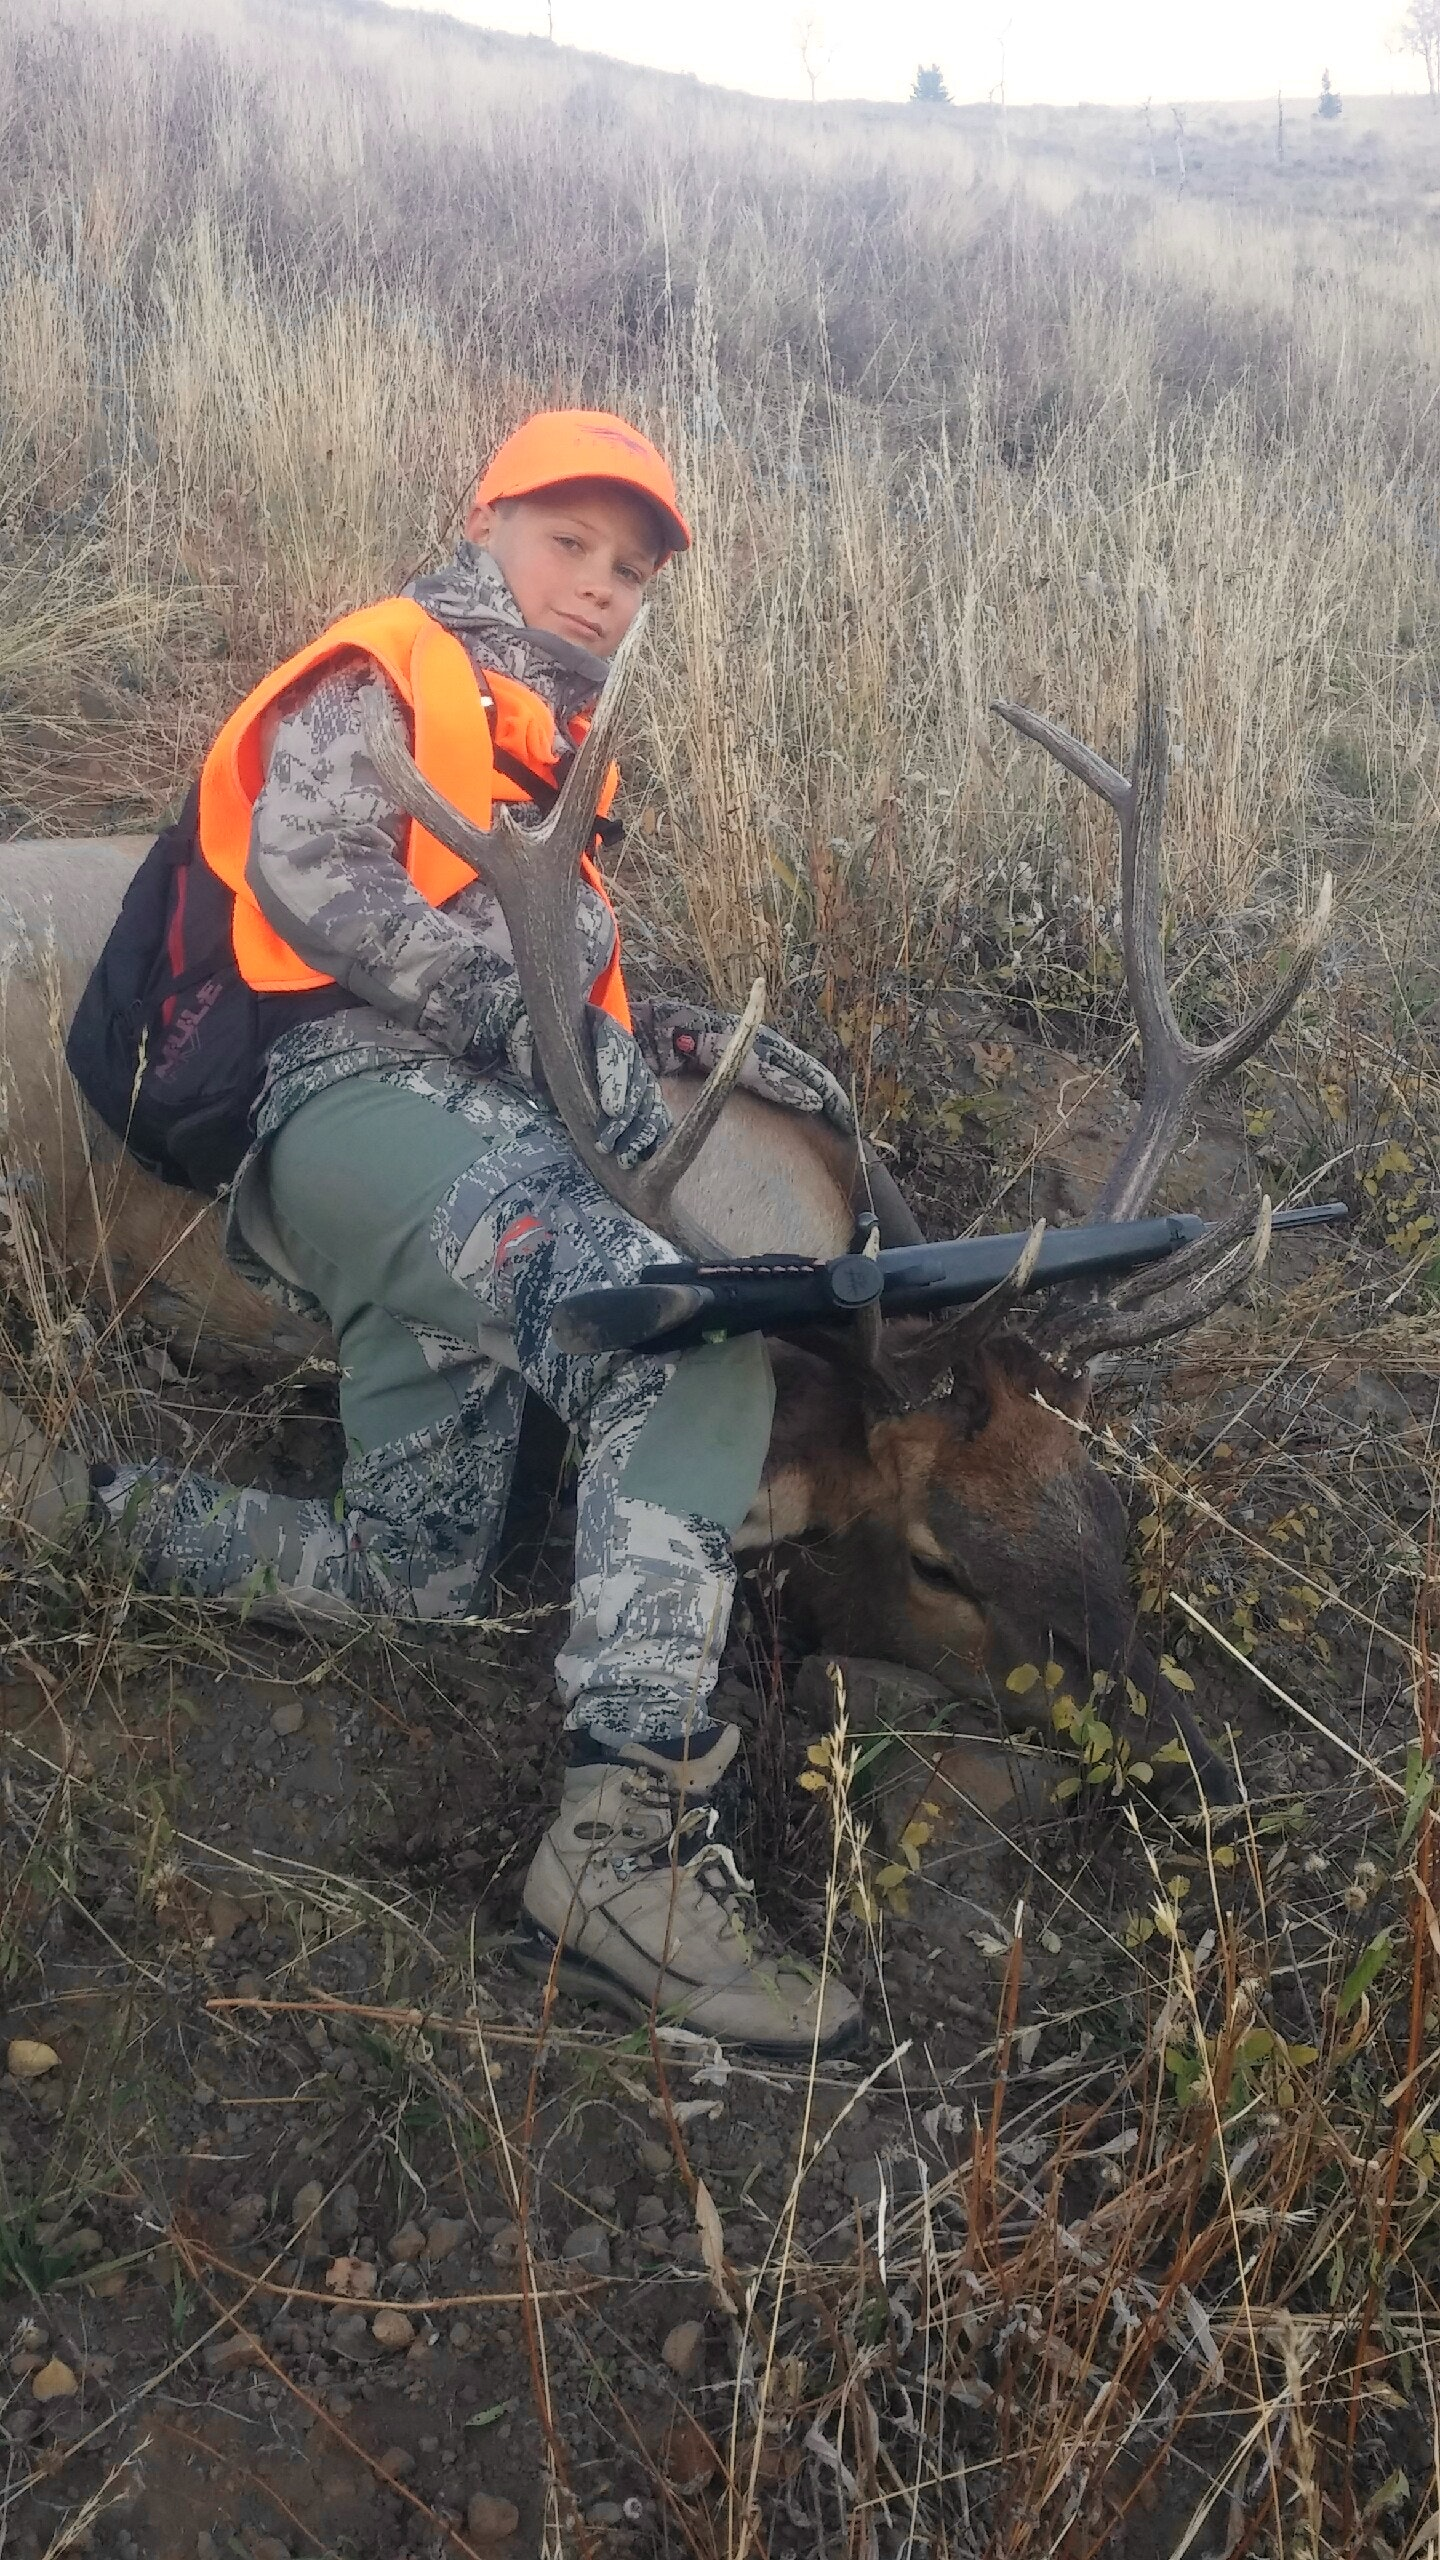 Great first hunt for this young man!